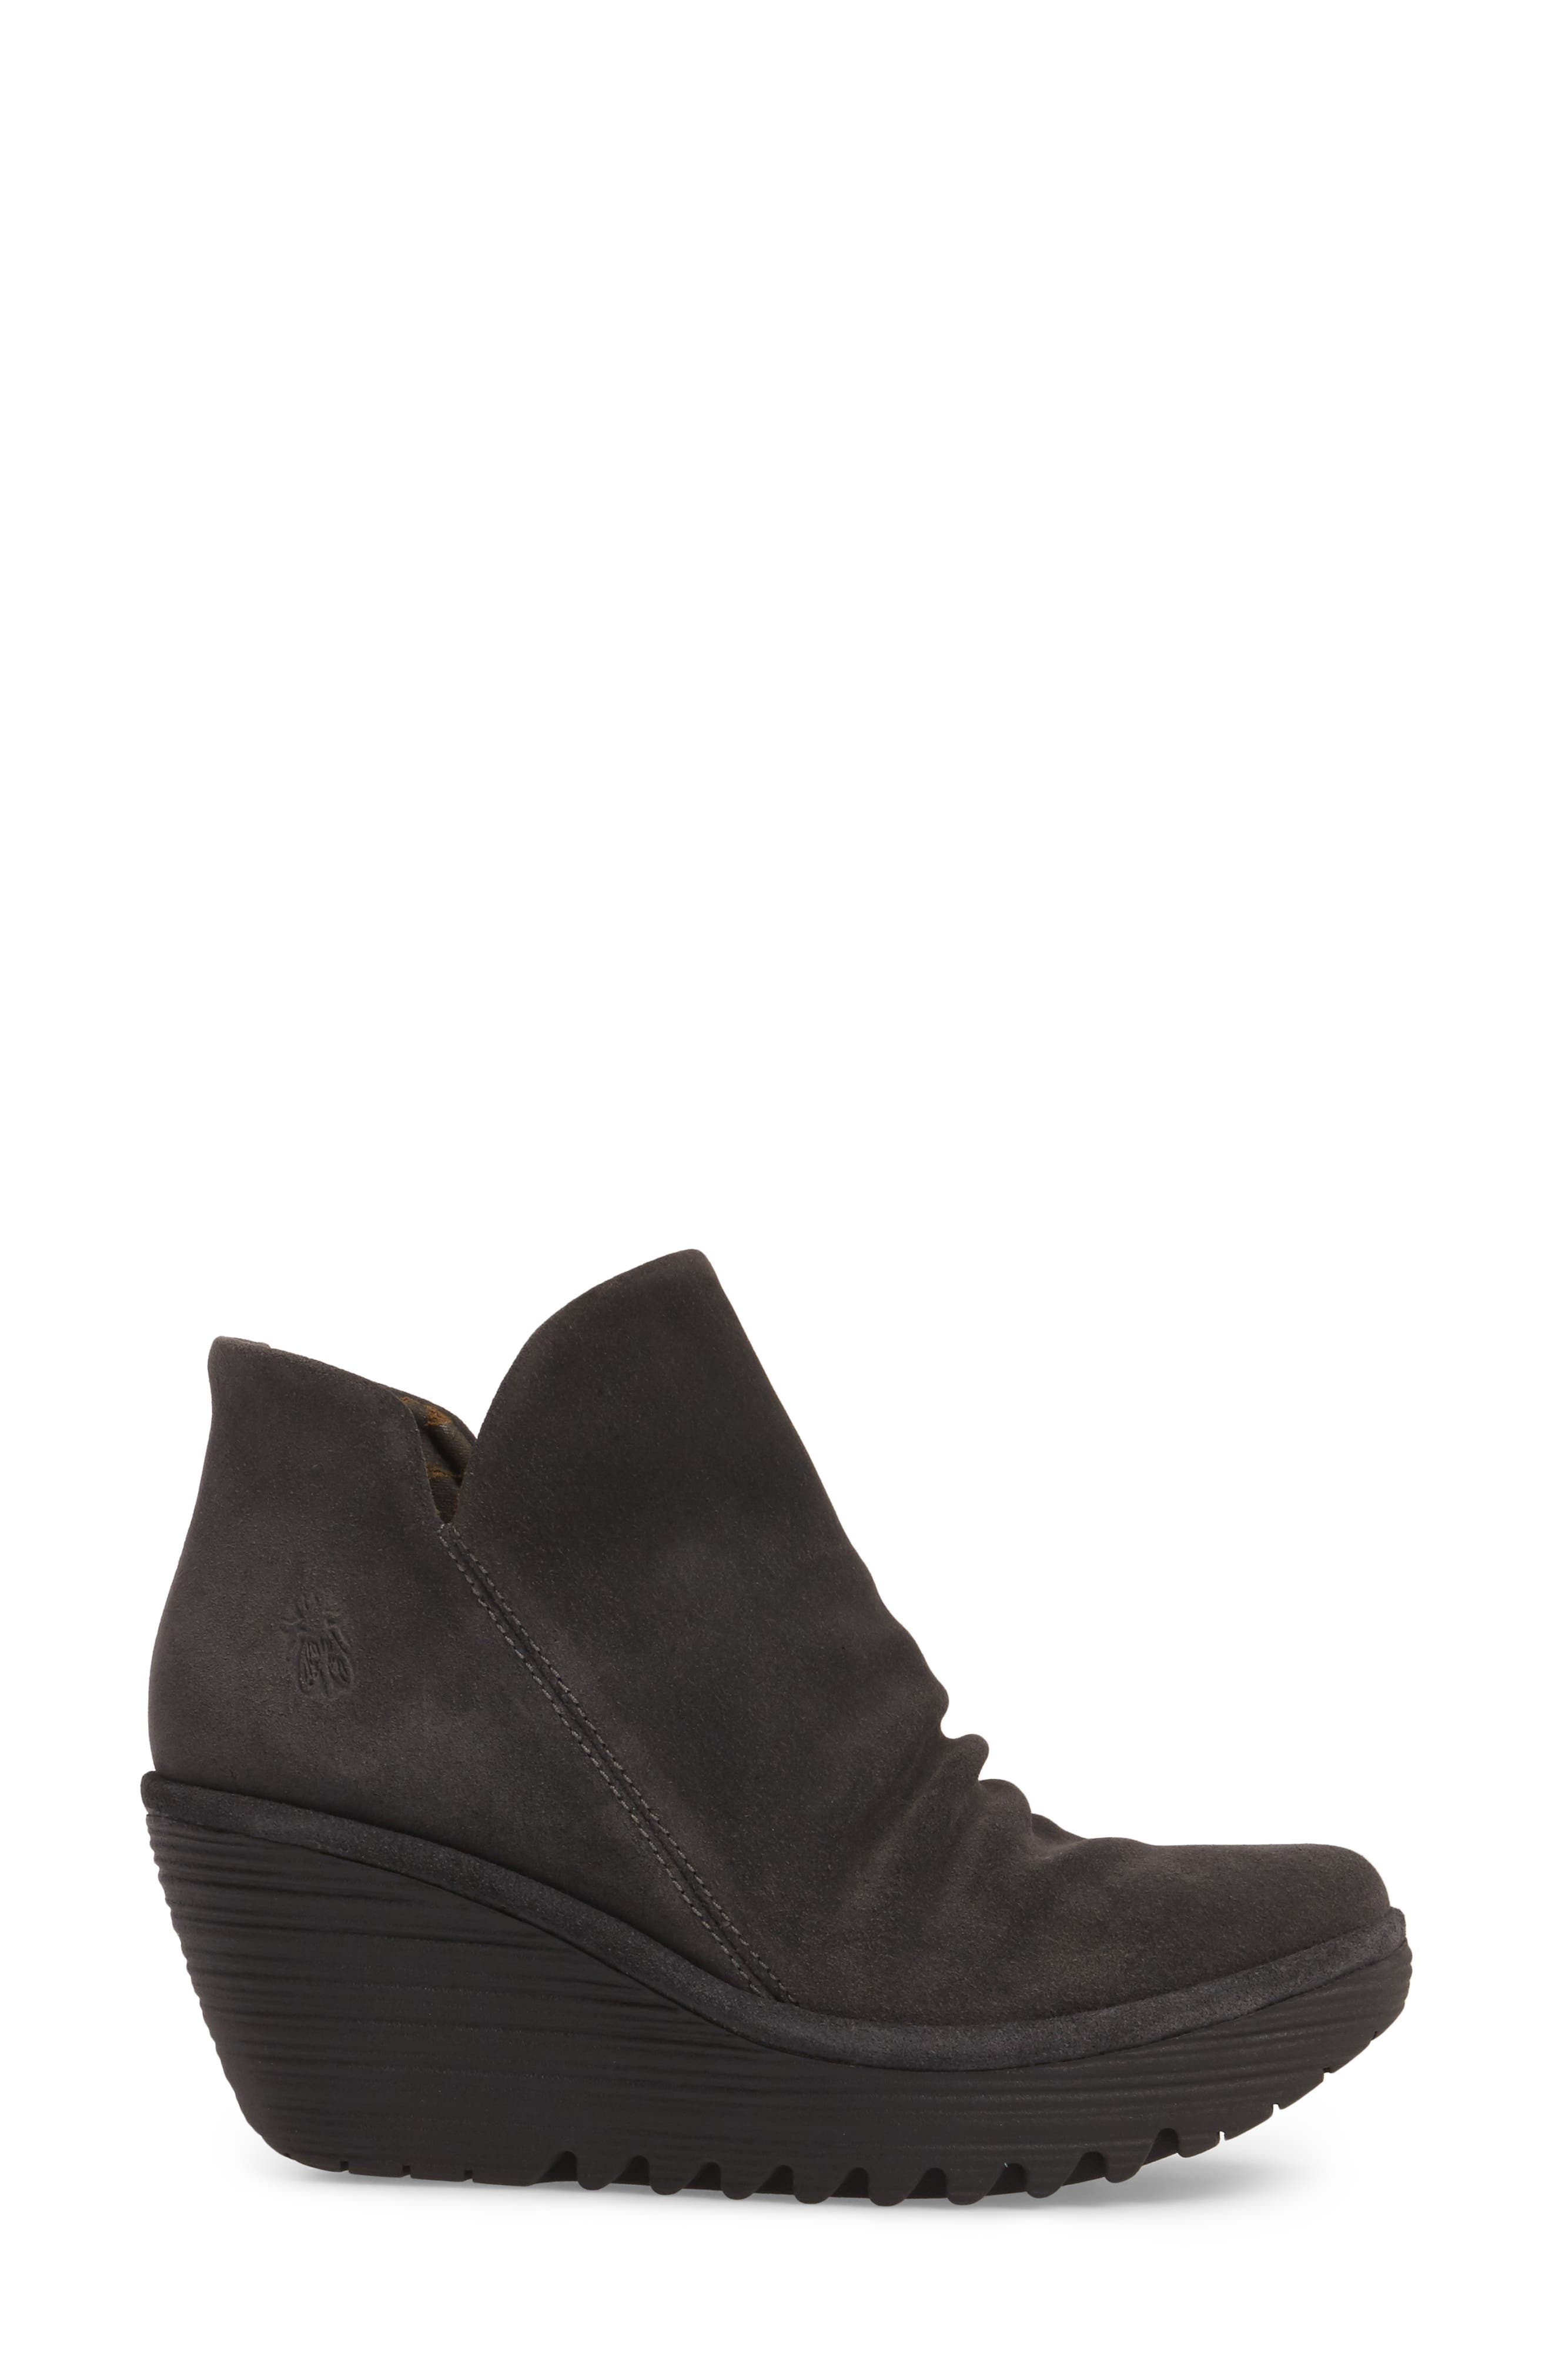 'Yip' Wedge Bootie,                             Alternate thumbnail 3, color,                             BLACK